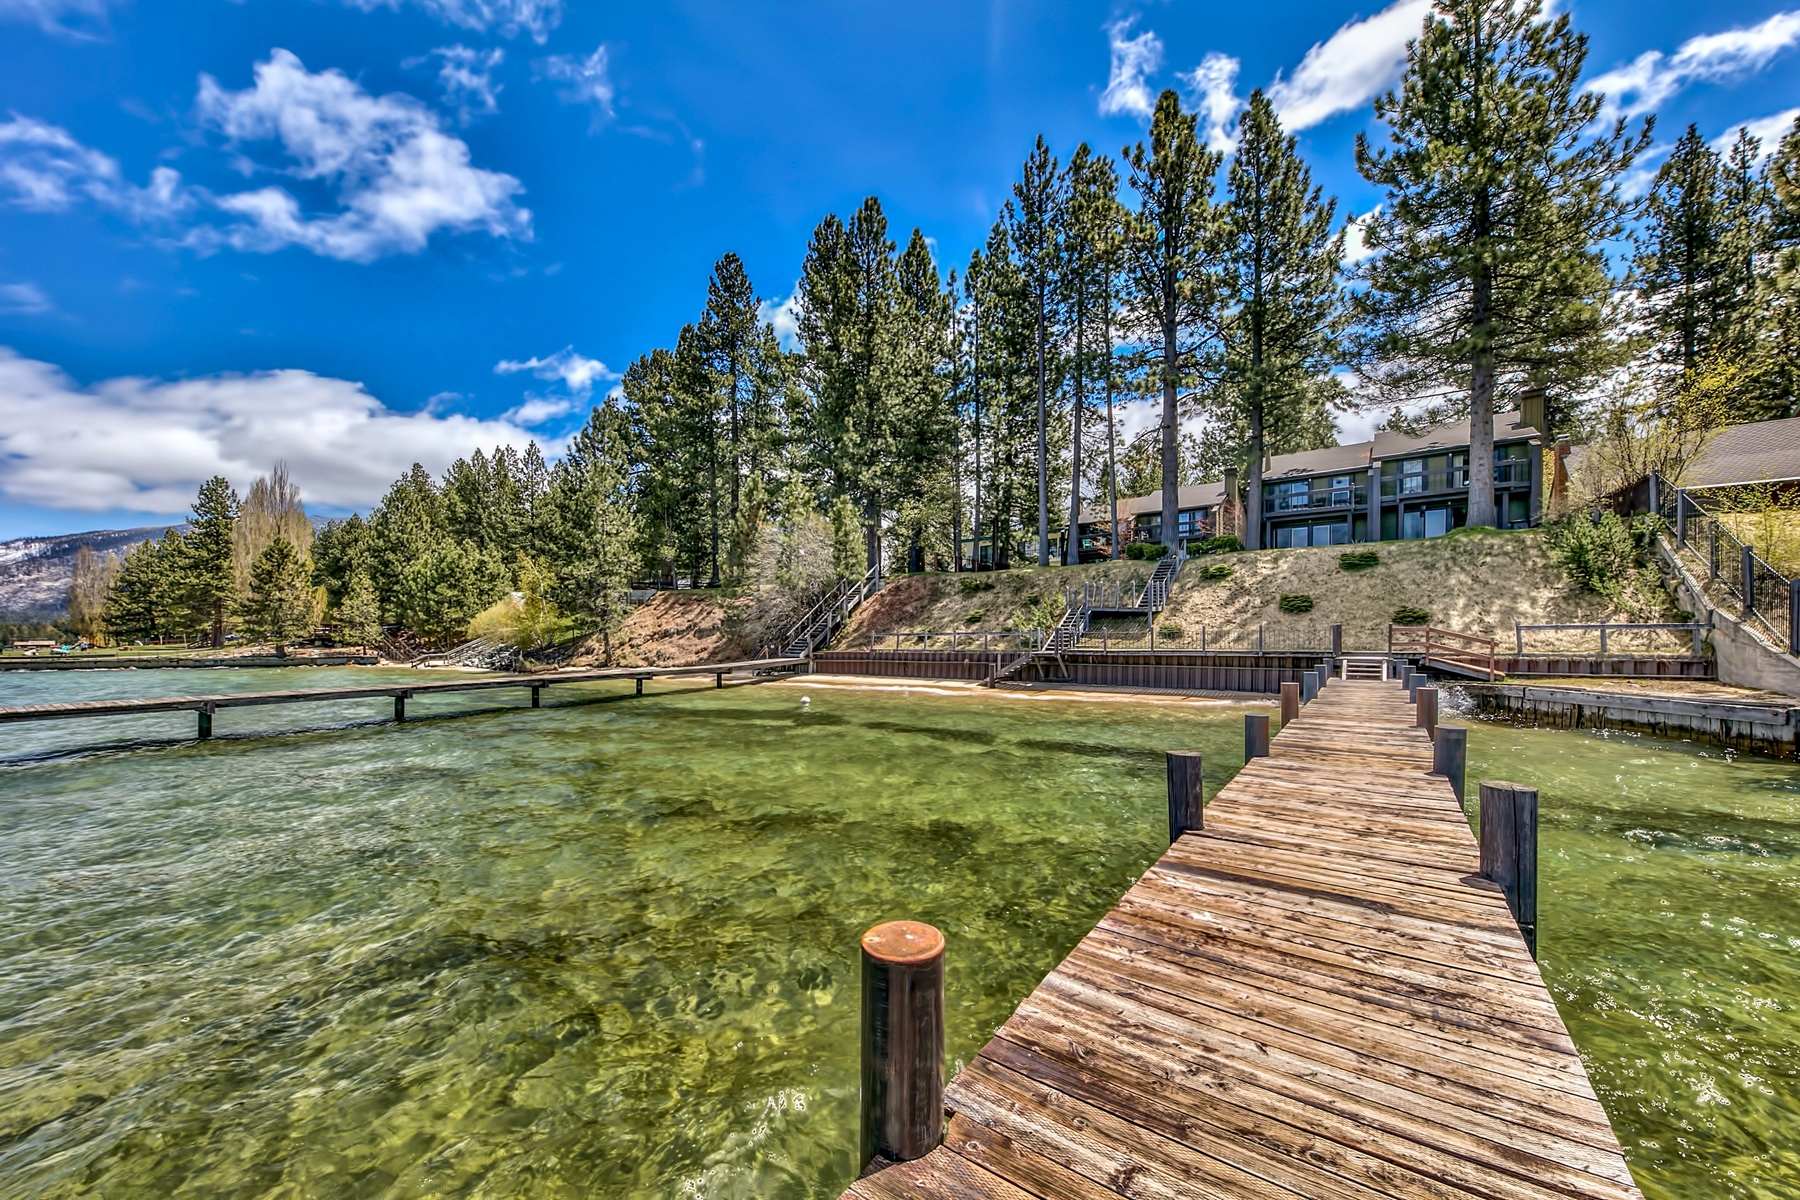 Additional photo for property listing at 765 Lakeview Ave, South Lake Tahoe, CA 96150 765 Lakeview Ave South Lake Tahoe, California 91711 United States